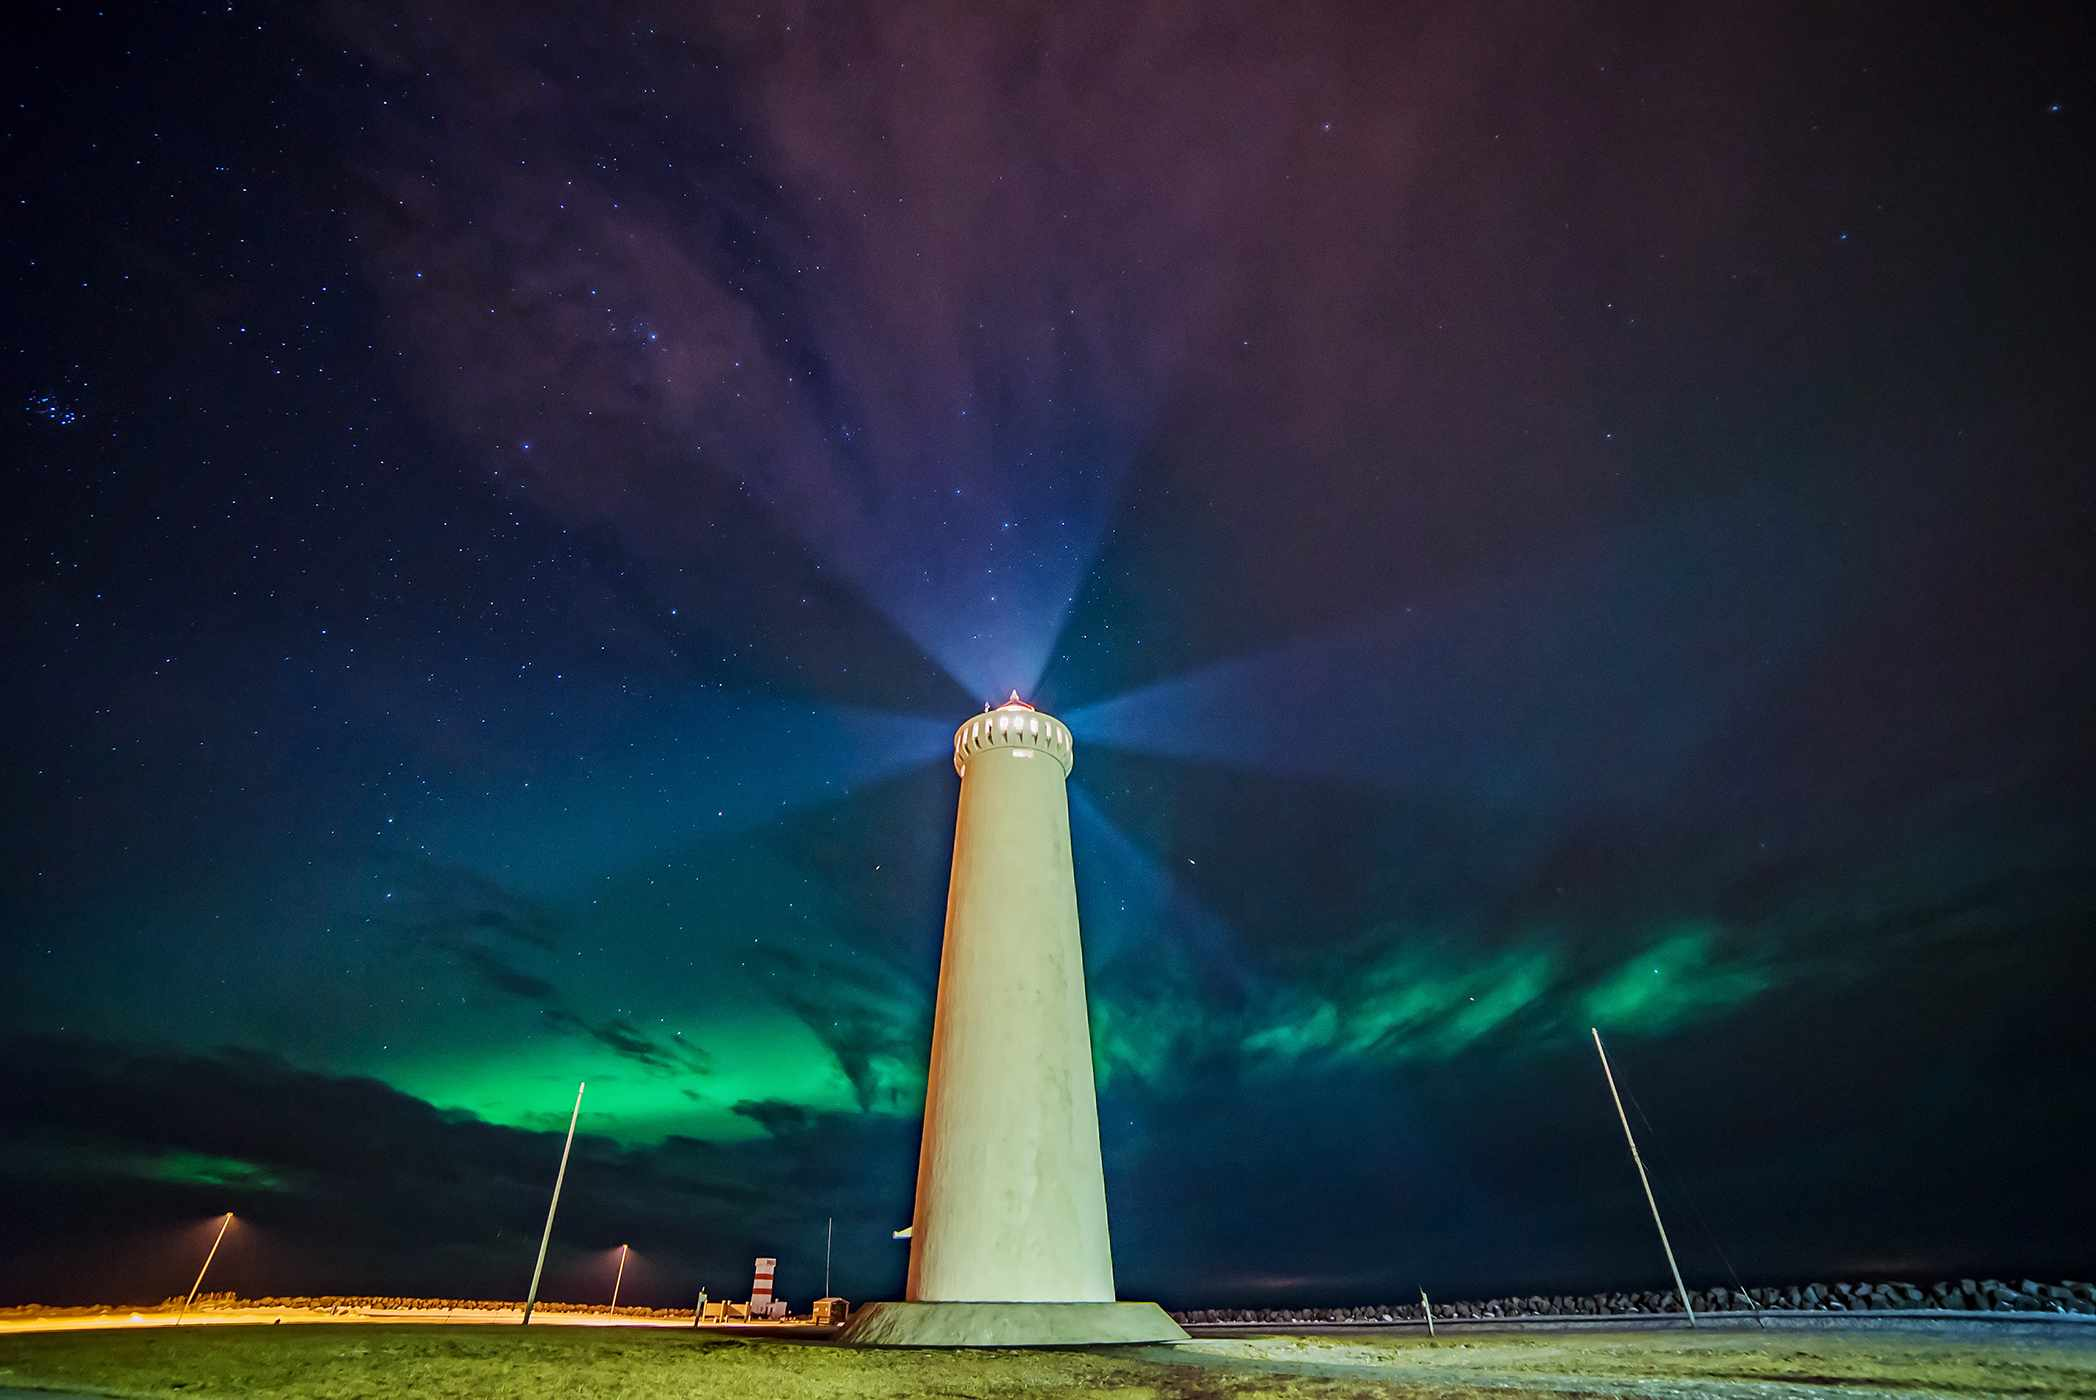 Mariusz Szymaszek, Garðskagi lighthouse, Iceland, 2 February 2016. Equipment: Sony A7S camera, Samyang 14mm lens.